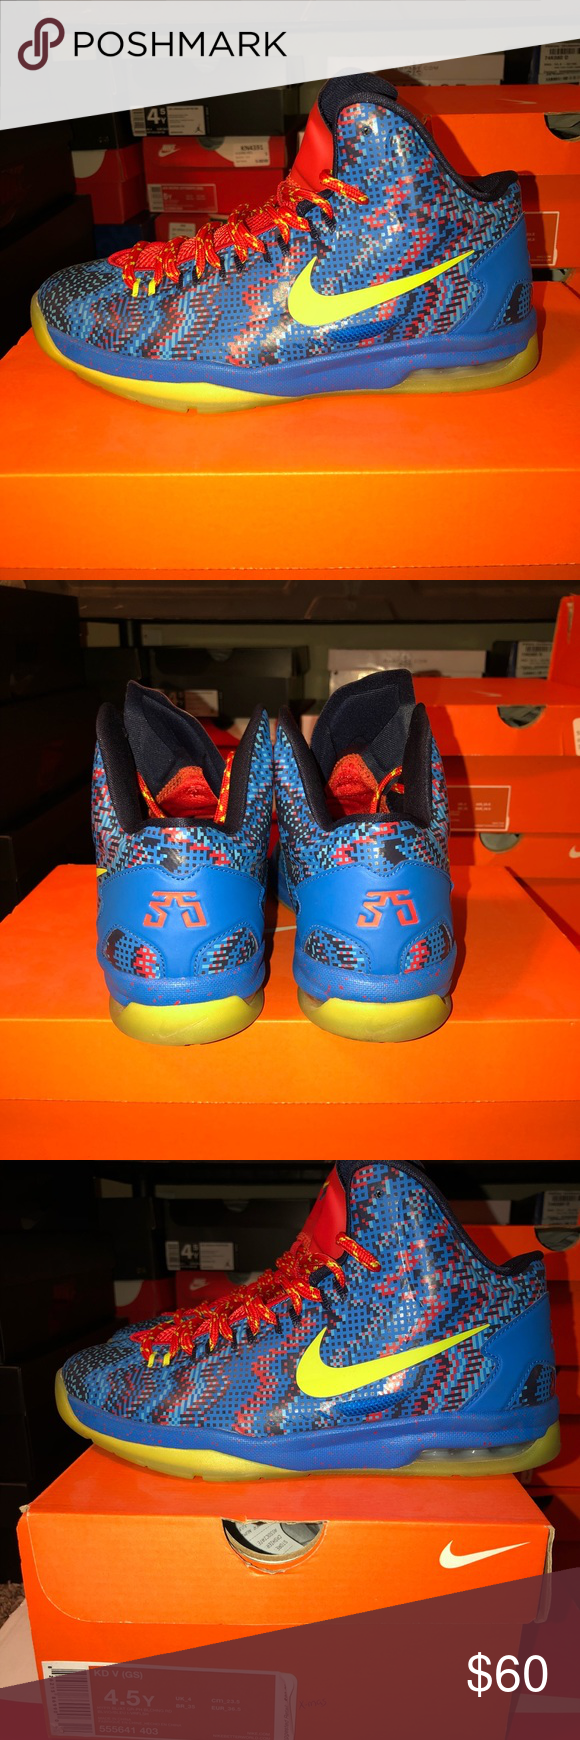 "23e676cb76b8 Nike KD 5 ""Christmas"" Kevin Durant size 4.5 GS Gradeschool size 5 9 10  condition Worn twice"